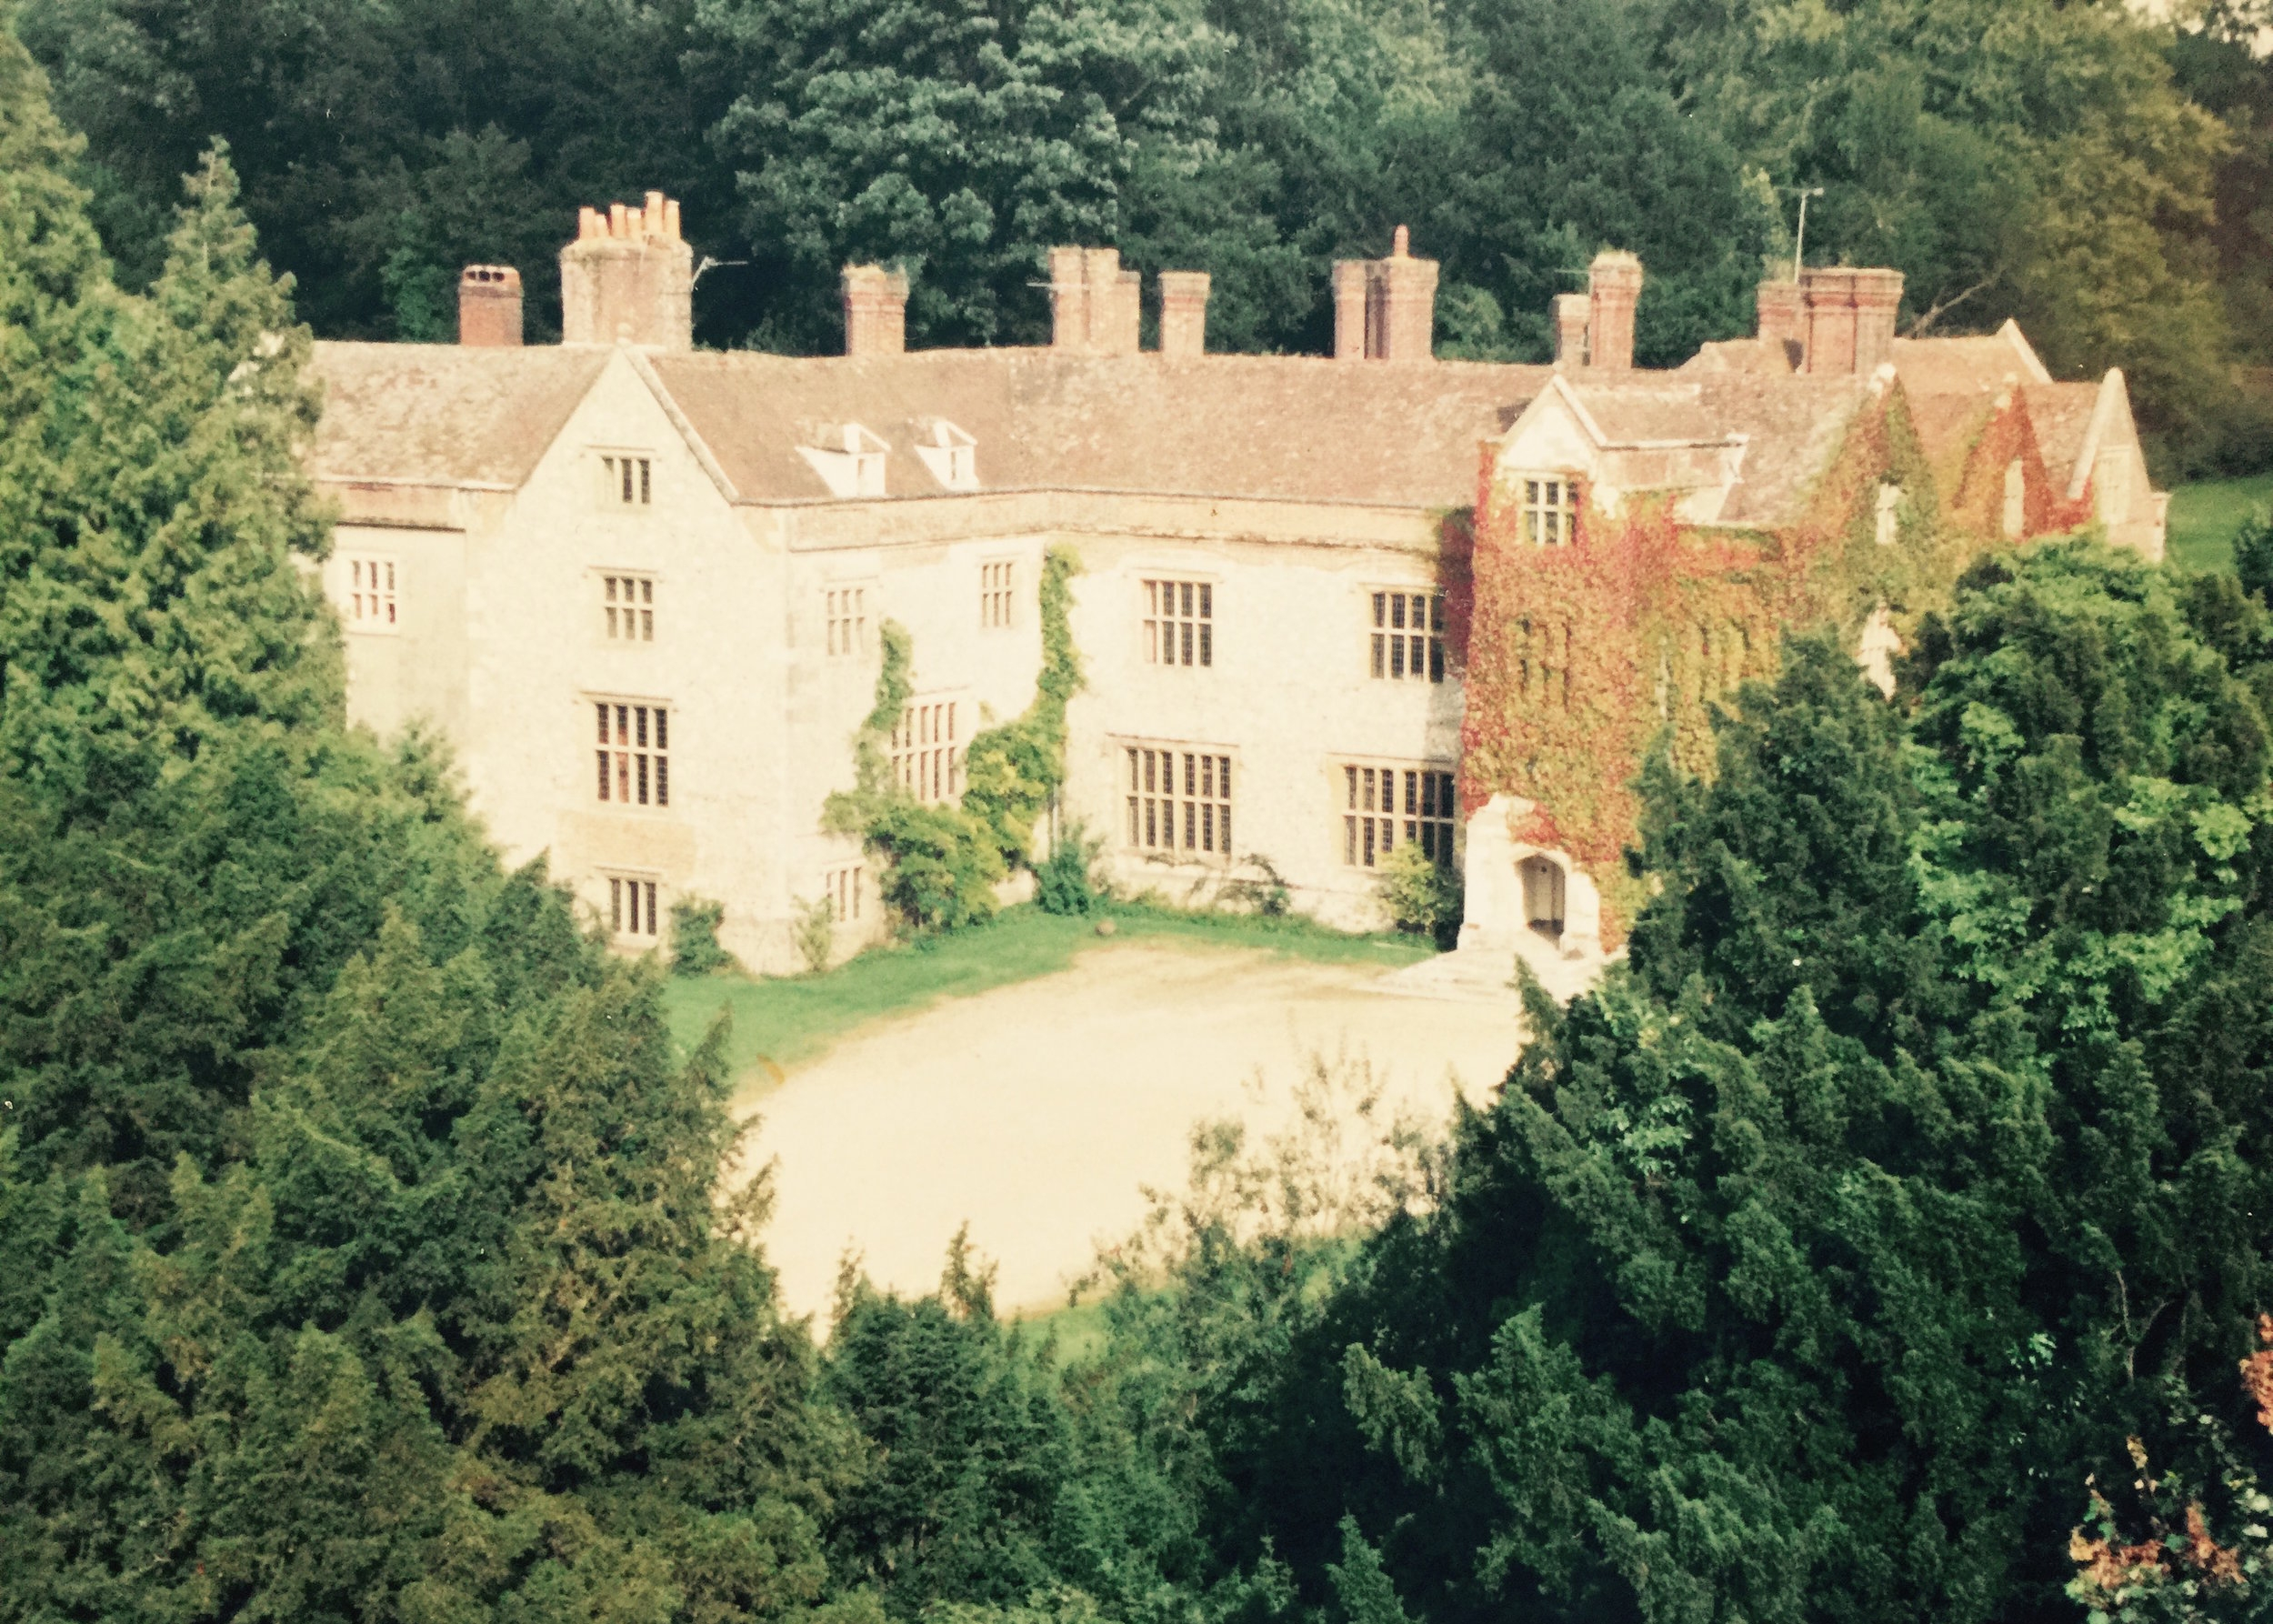 Chawton House in 1980s   © Jane Austen Literacy Foundation. All Rights Reserved.